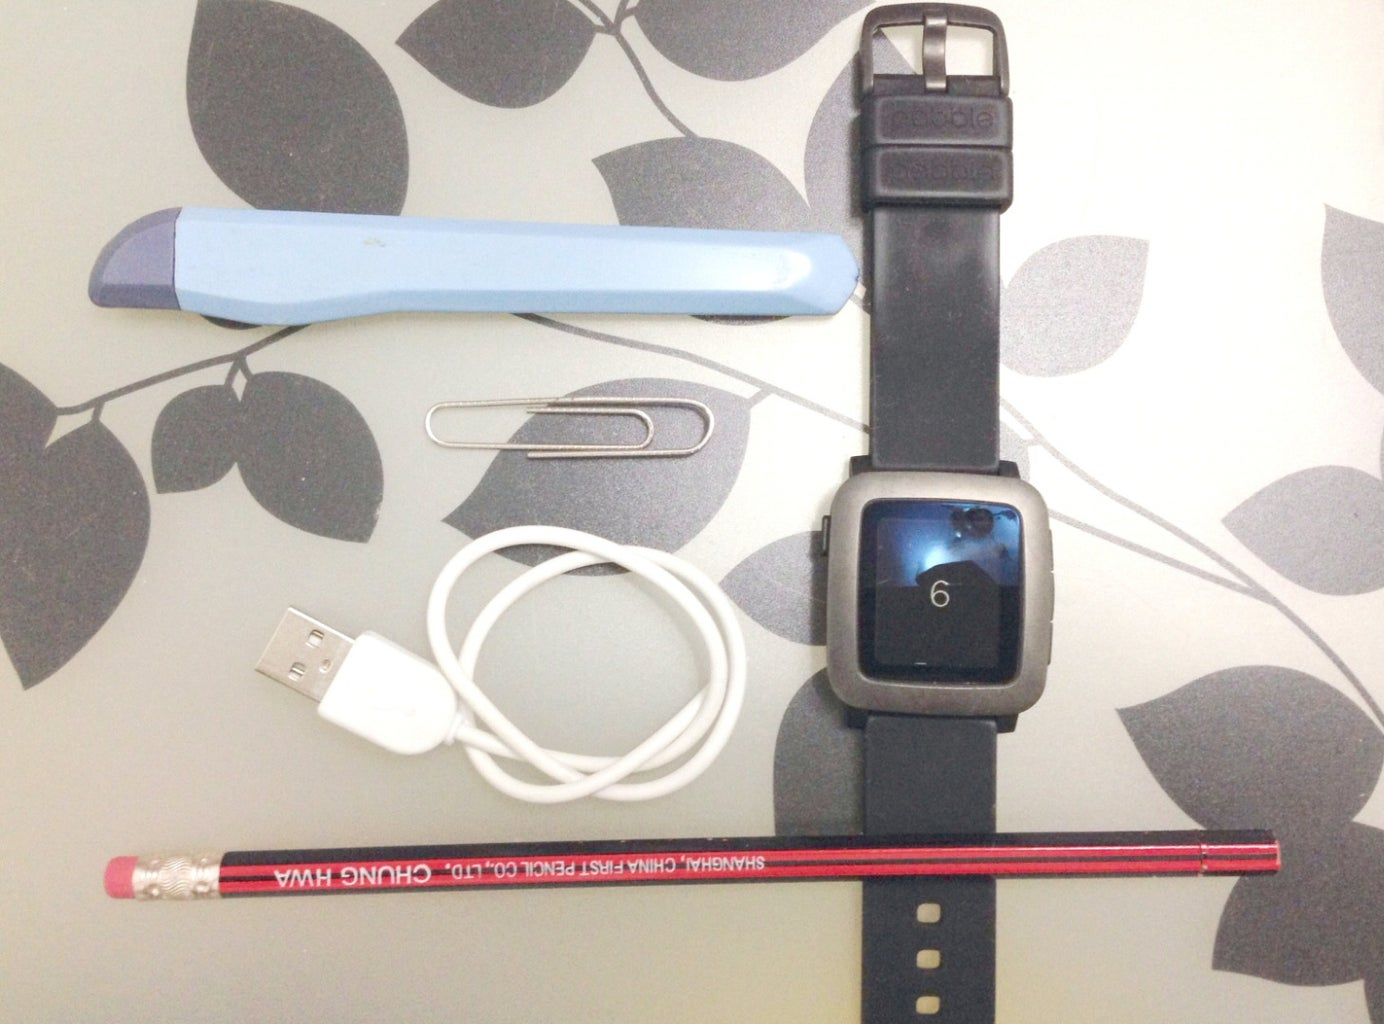 Make Your Own Pebble Time Charger